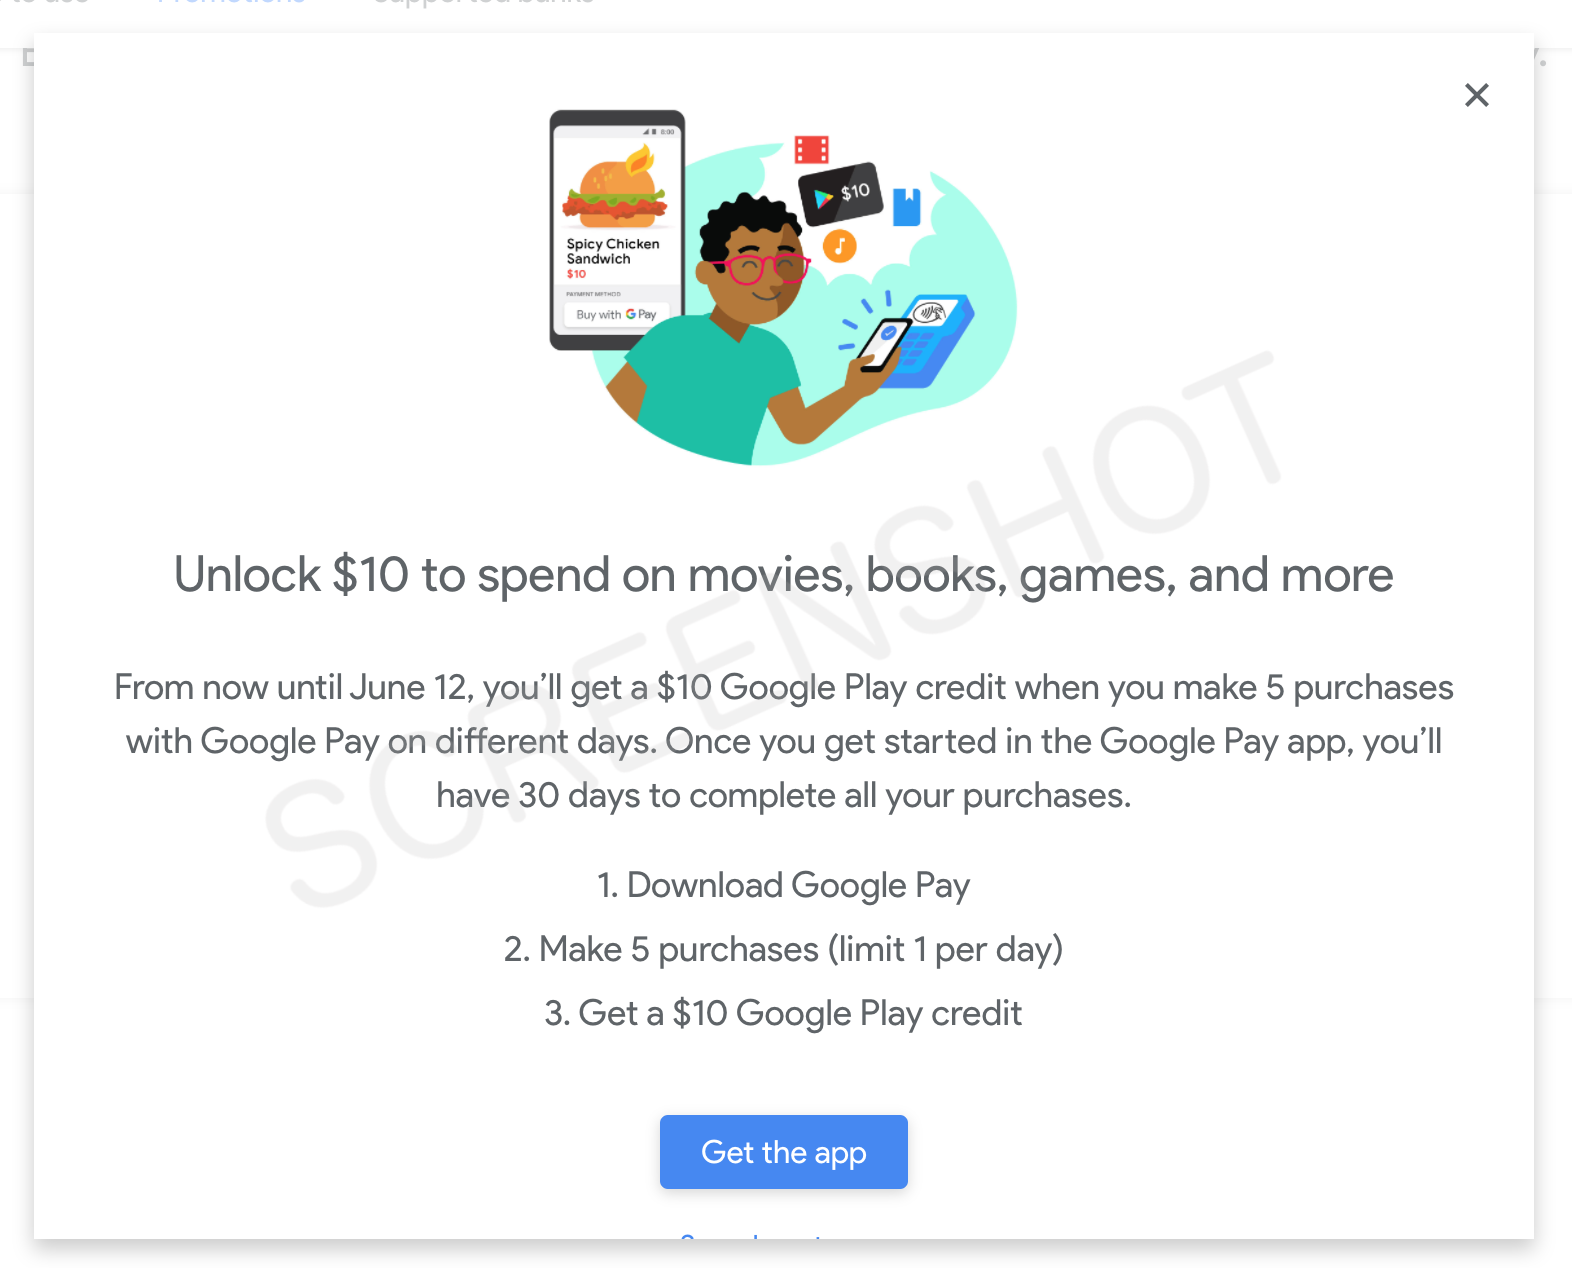 FREE $10 Google Play Credit Deal